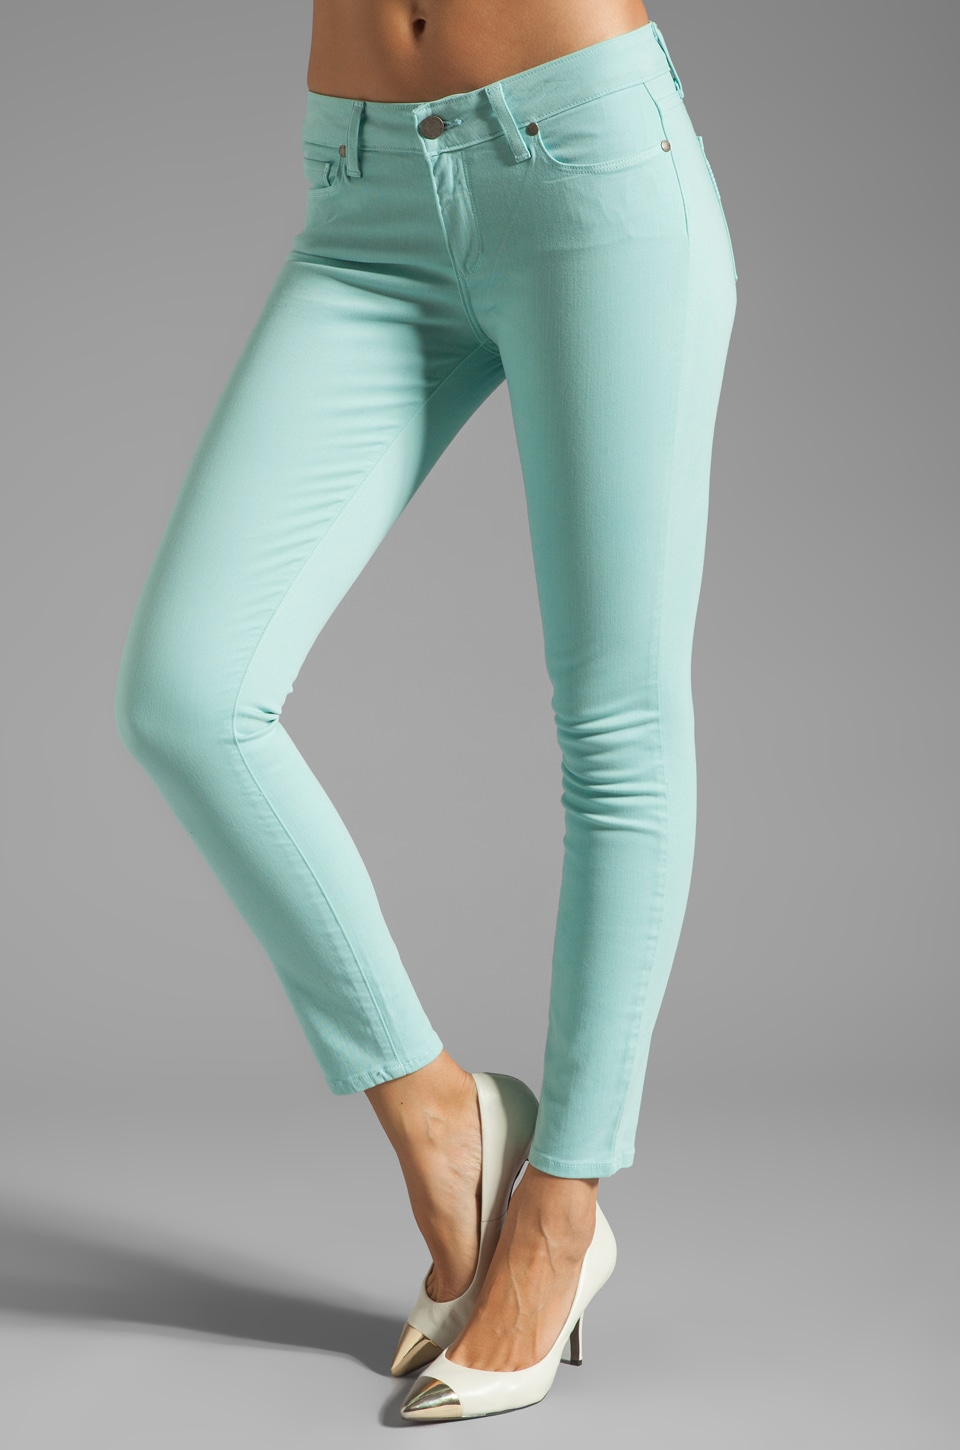 PAIGE Denim Verdugo Ankle in Sky